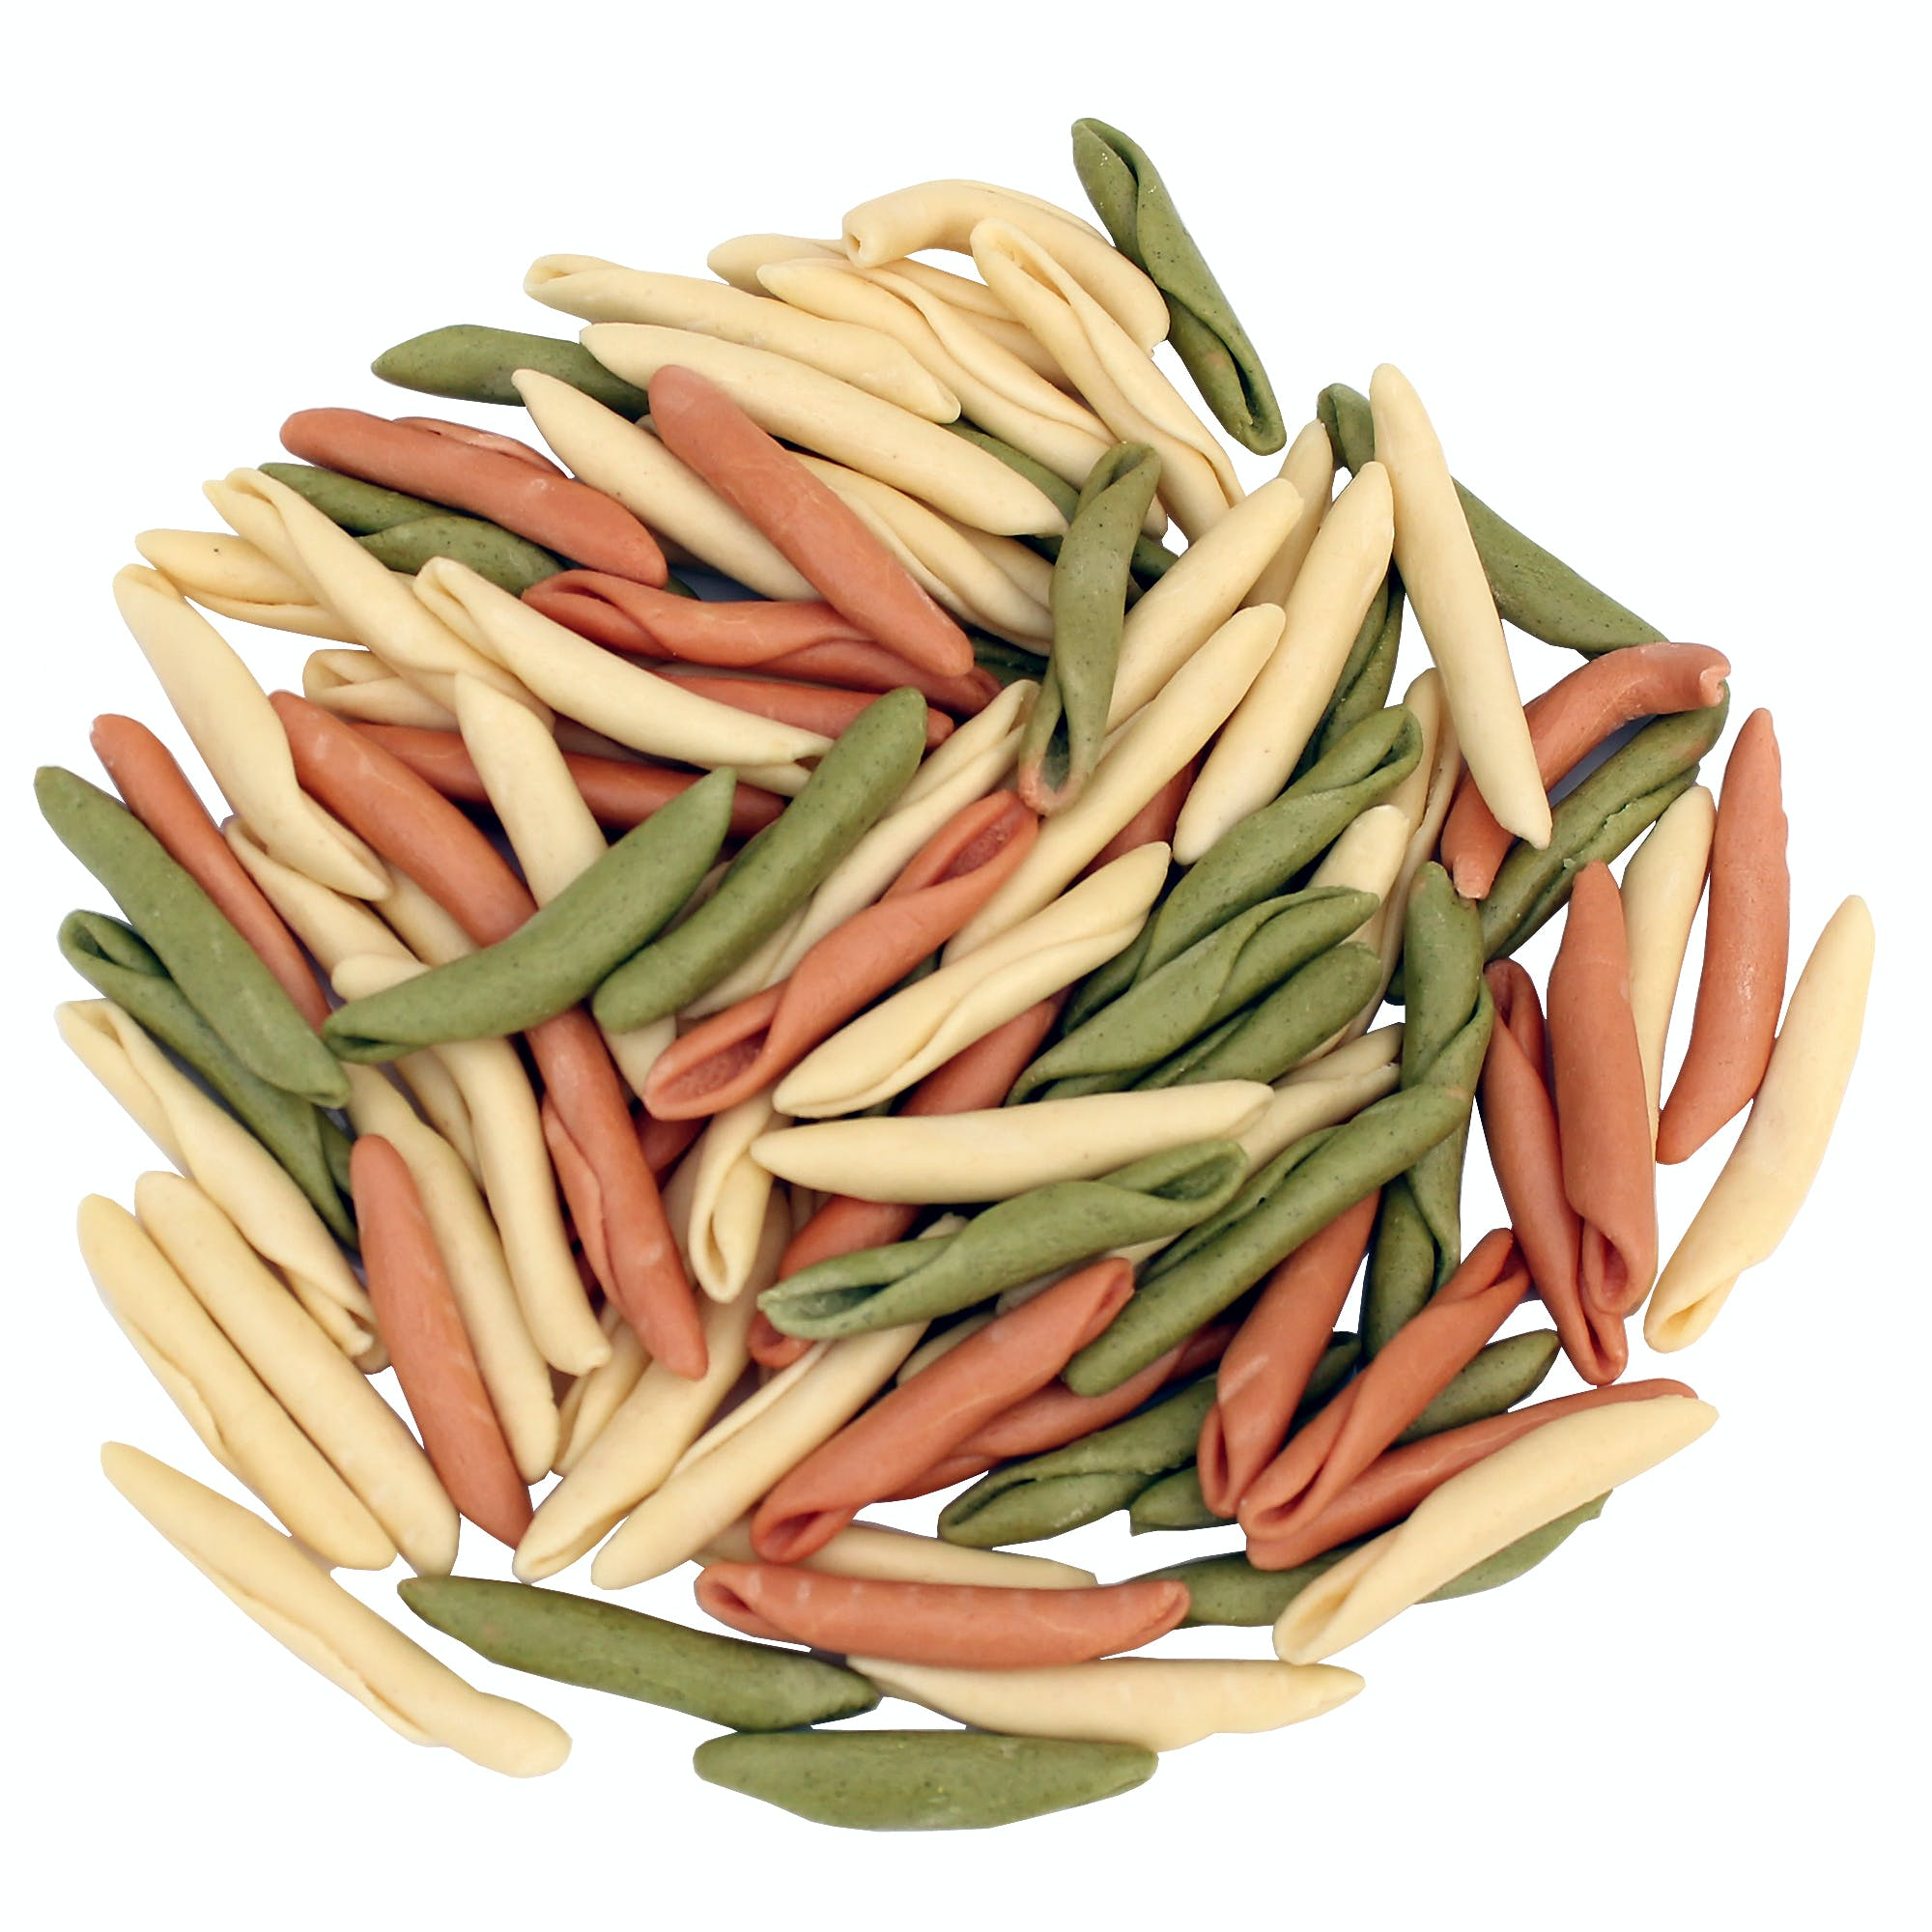 Fricelli Tri-Colored Pasta Pasta sold by M5 Corporation